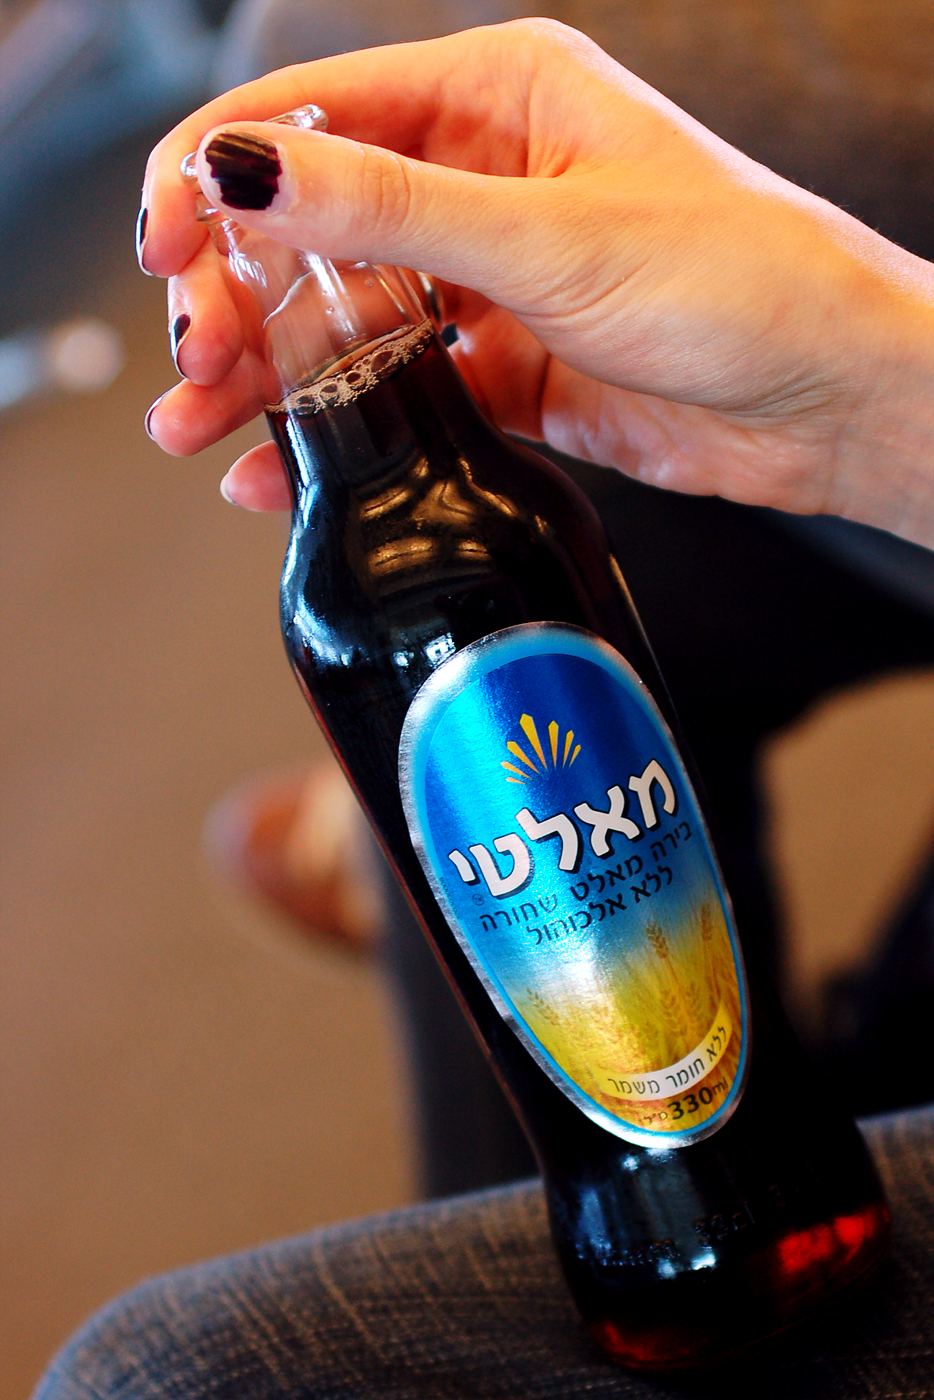 Click photo to download. Caption: Malt beer from Israel. Credit: Loopstation.